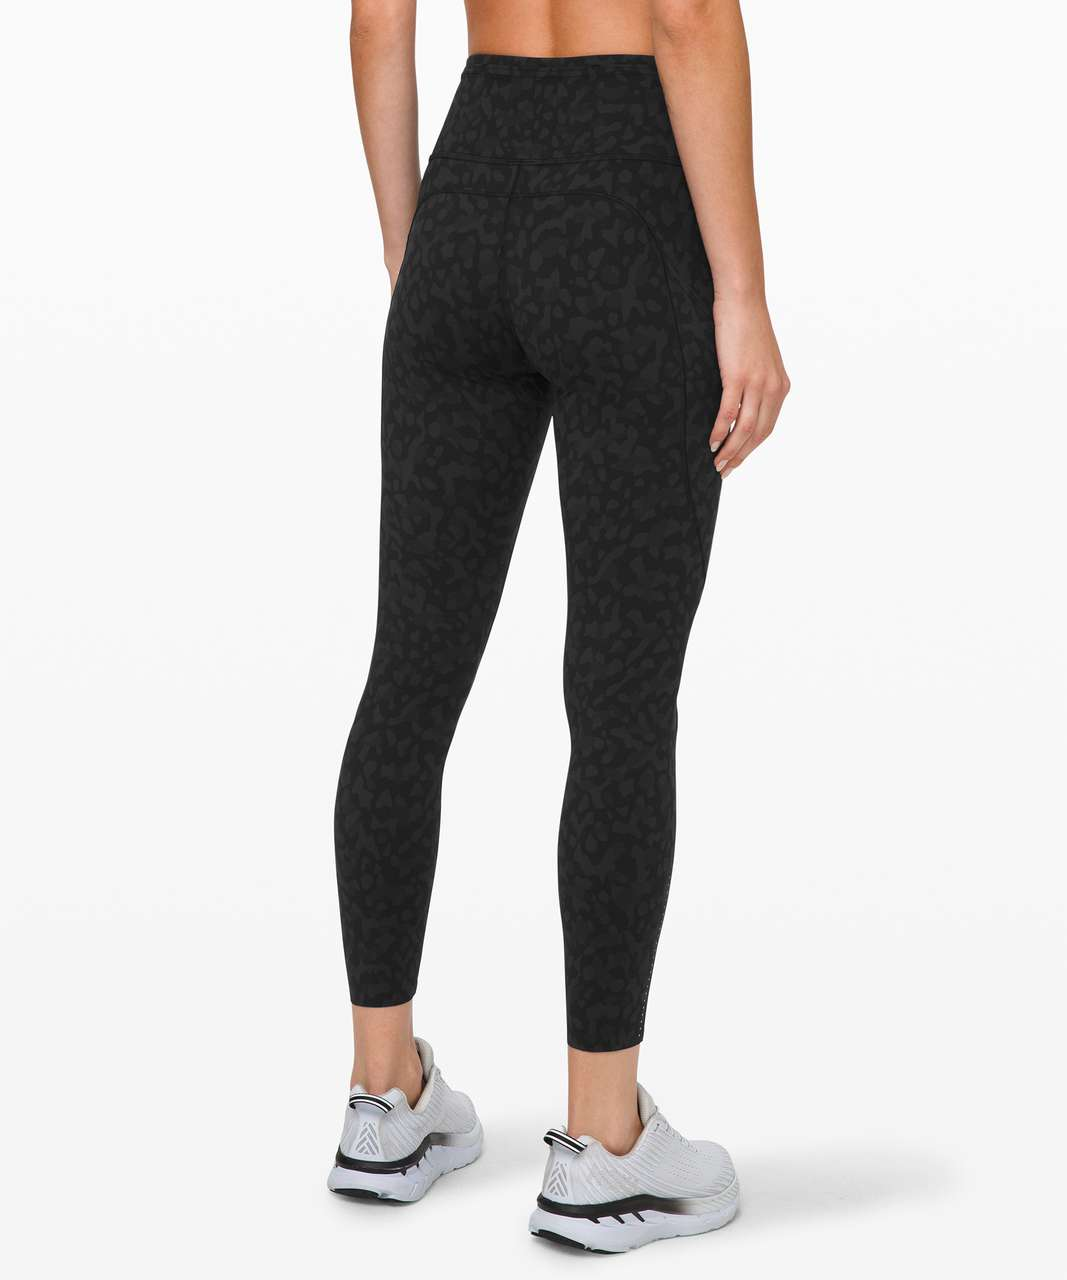 "Lululemon Fast and Free Tight II 25"" *Non-Reflective Nulux - Formation Camo Deep Coal Multi"